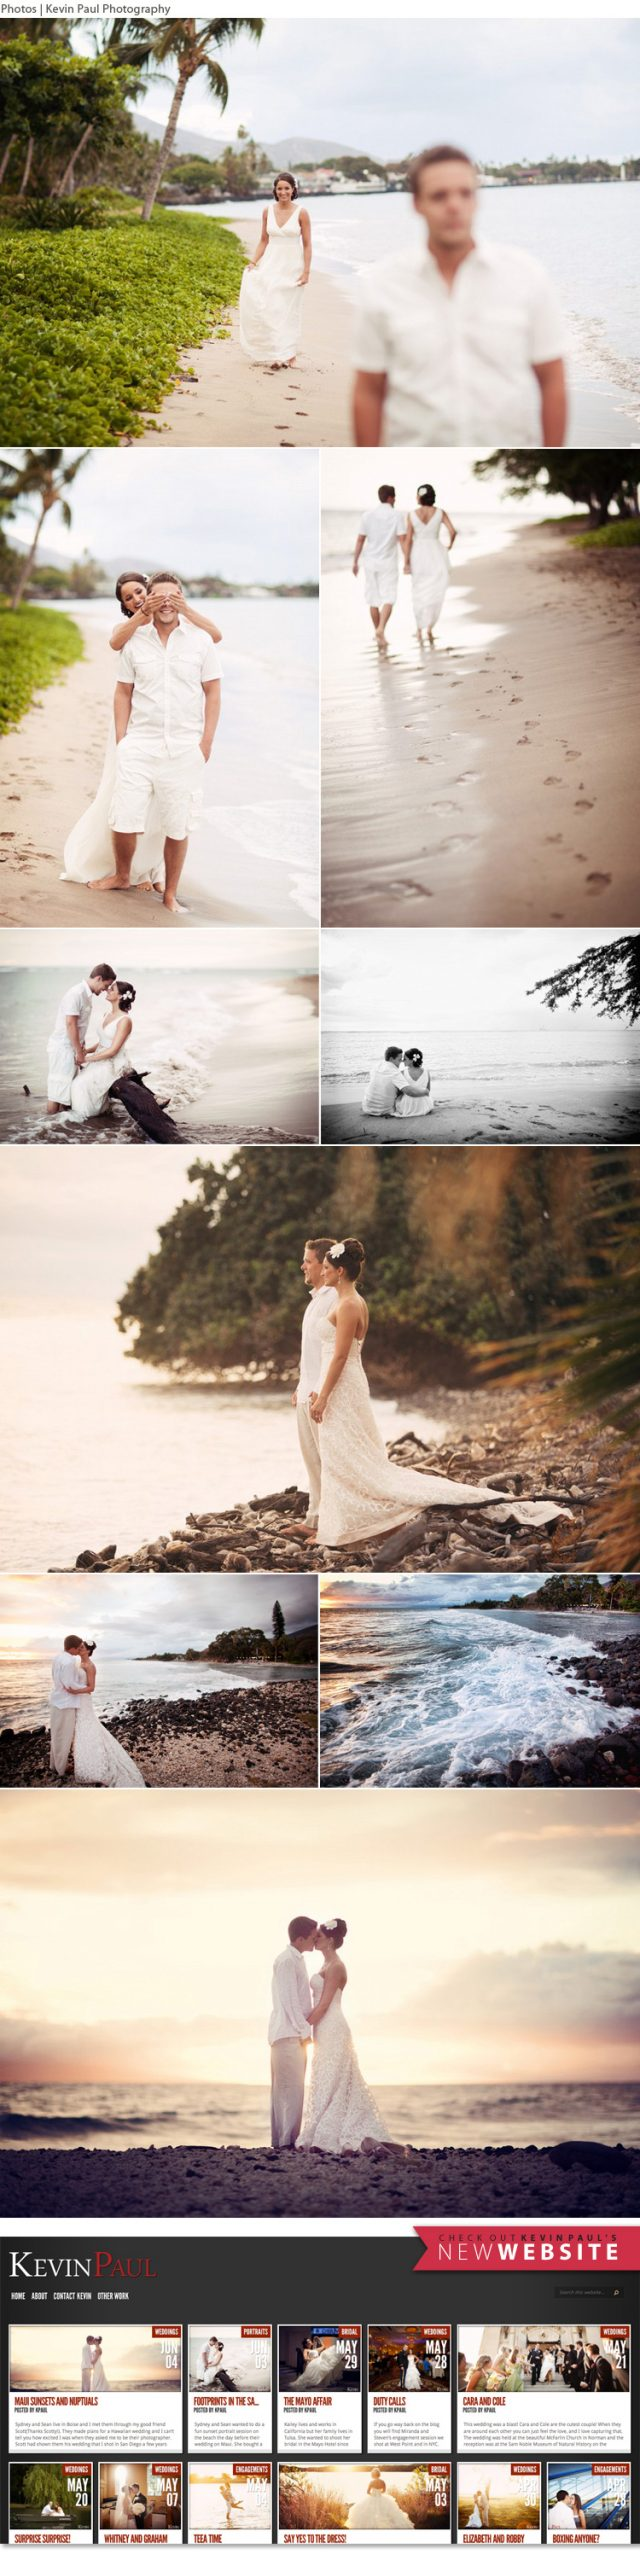 dreamy destination shoot–kevin paul photography